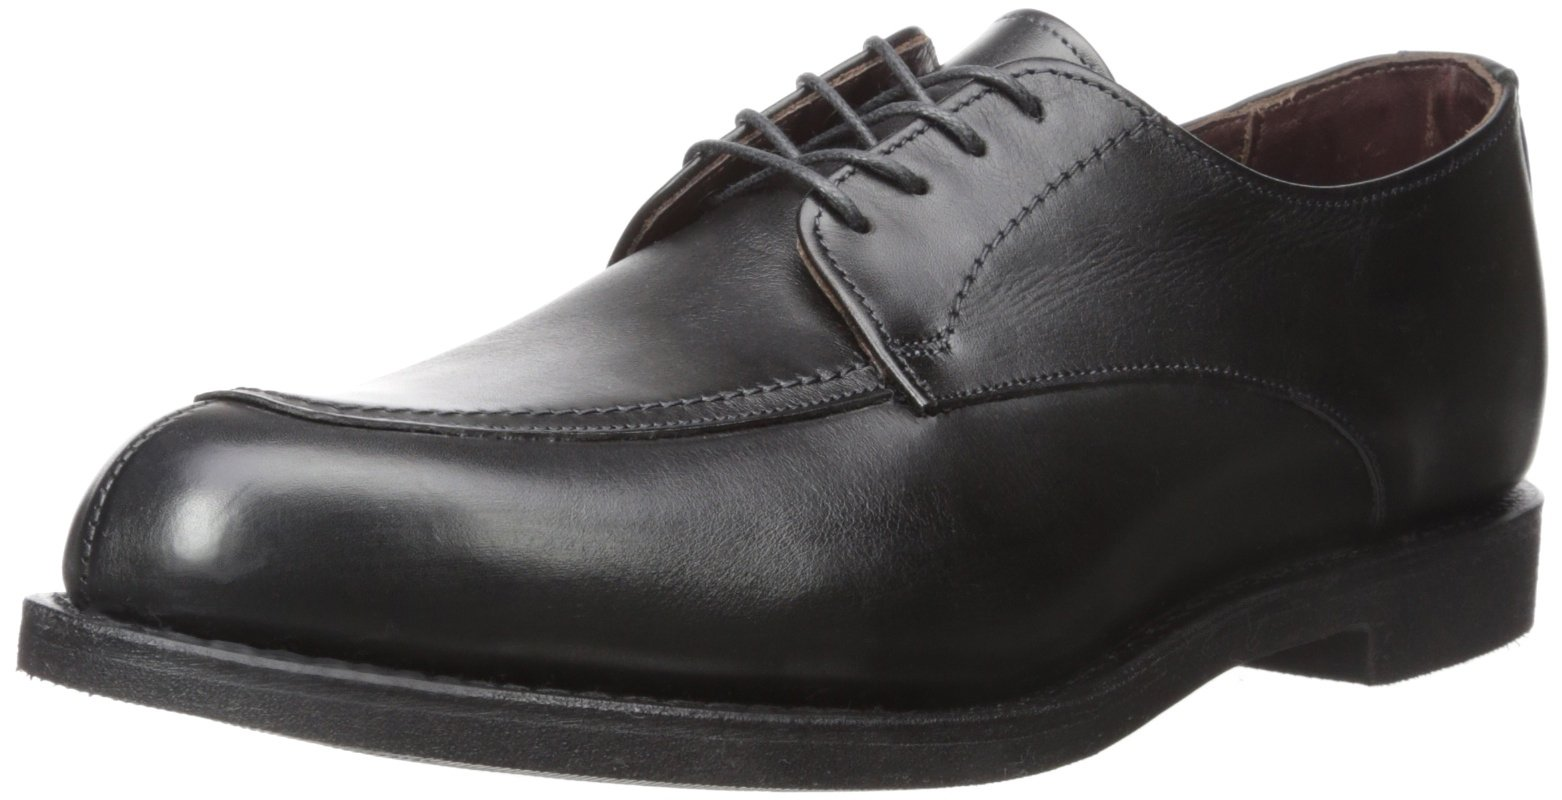 Allen Edmonds Men's MSP Oxford, Black Leather, 10.5 D US